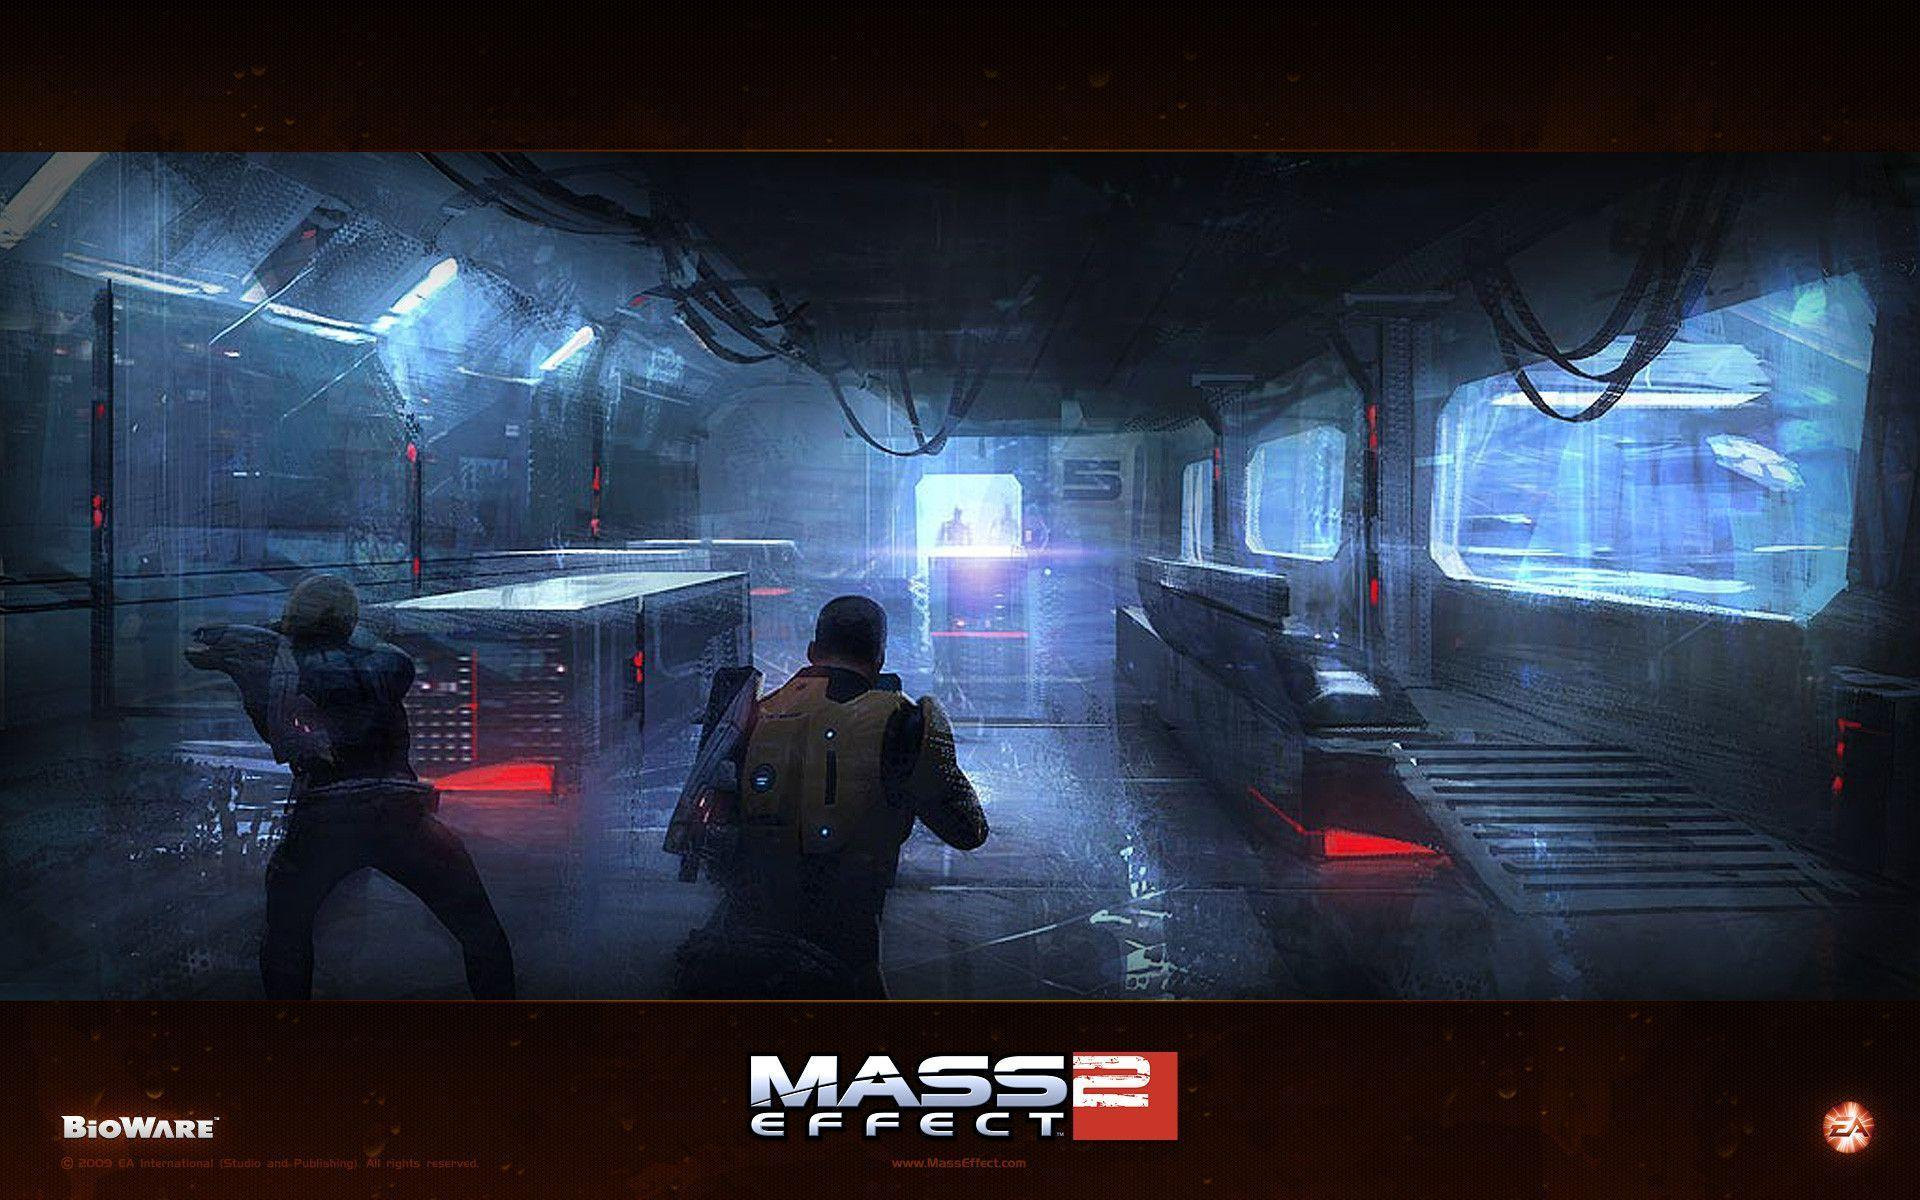 Mass Effect 2 TheWallpapers